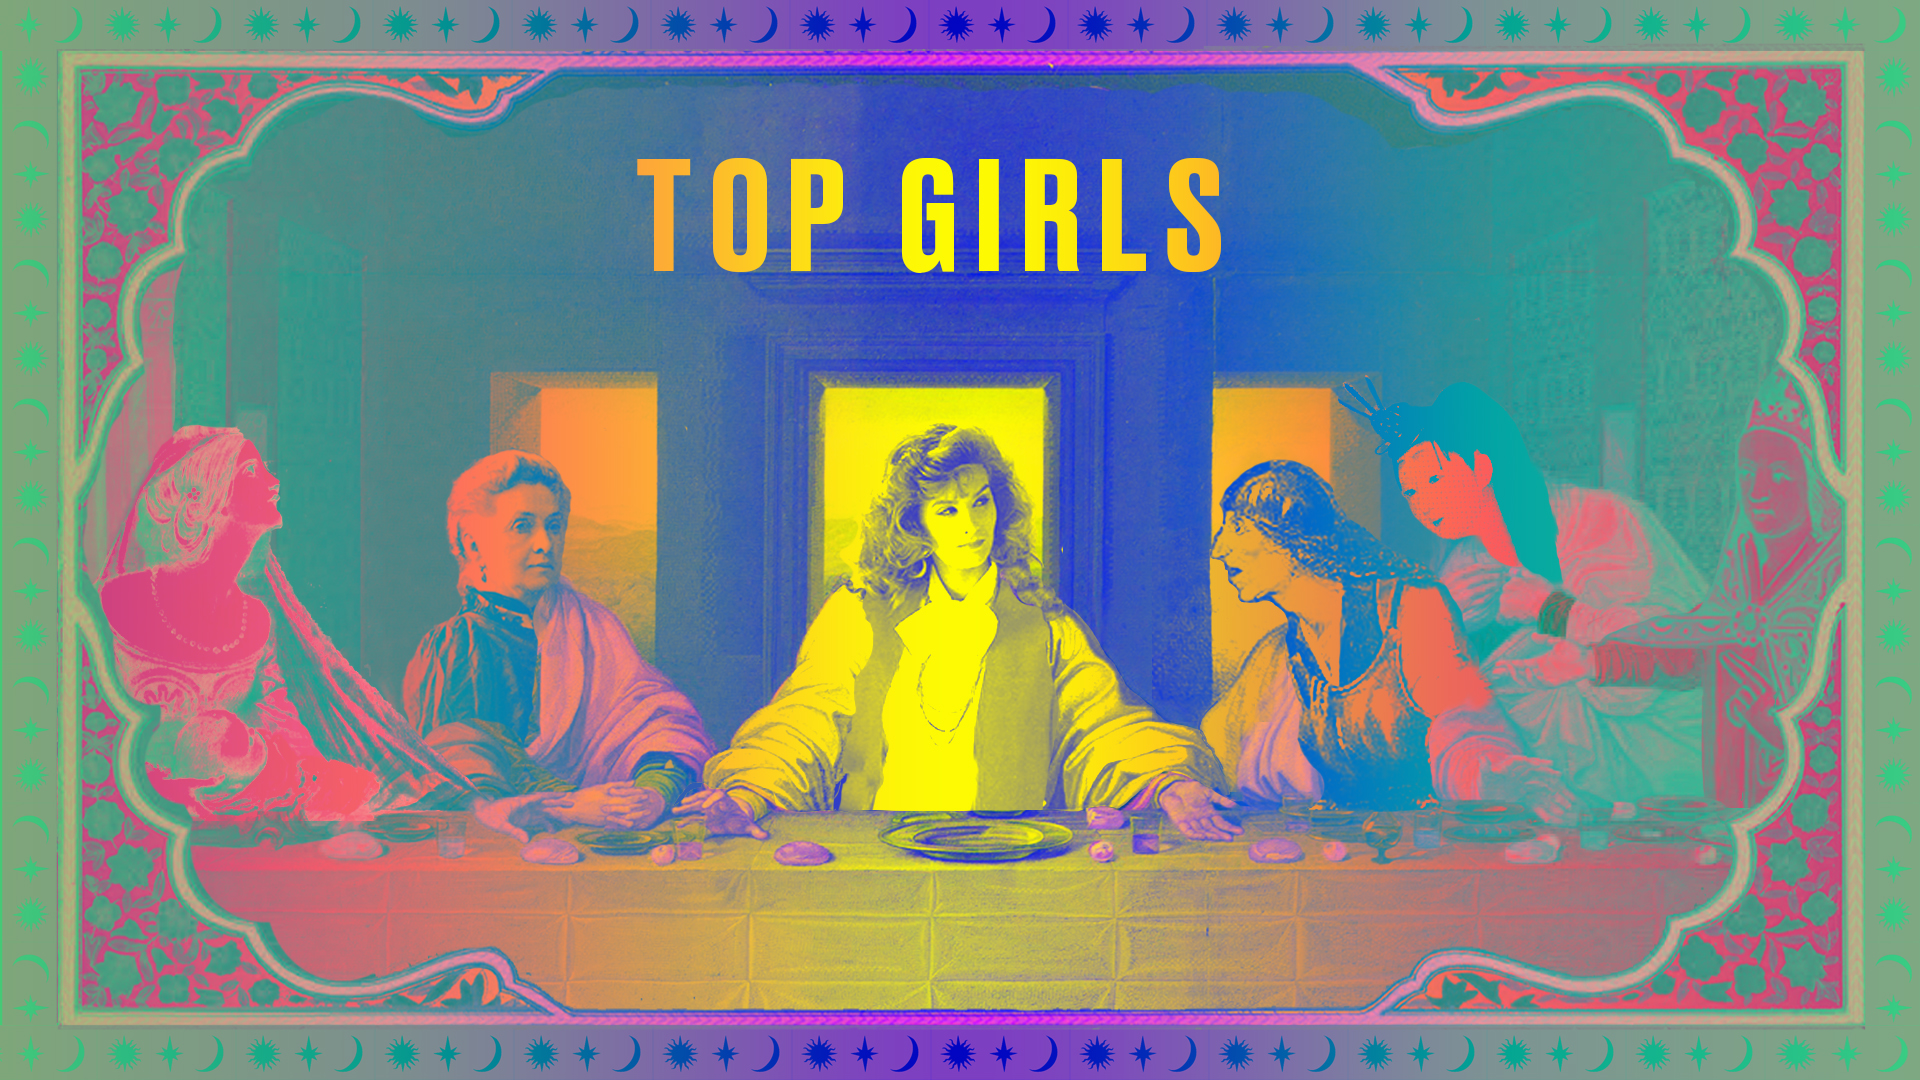 Top Girls - Designer: Emma Berliner